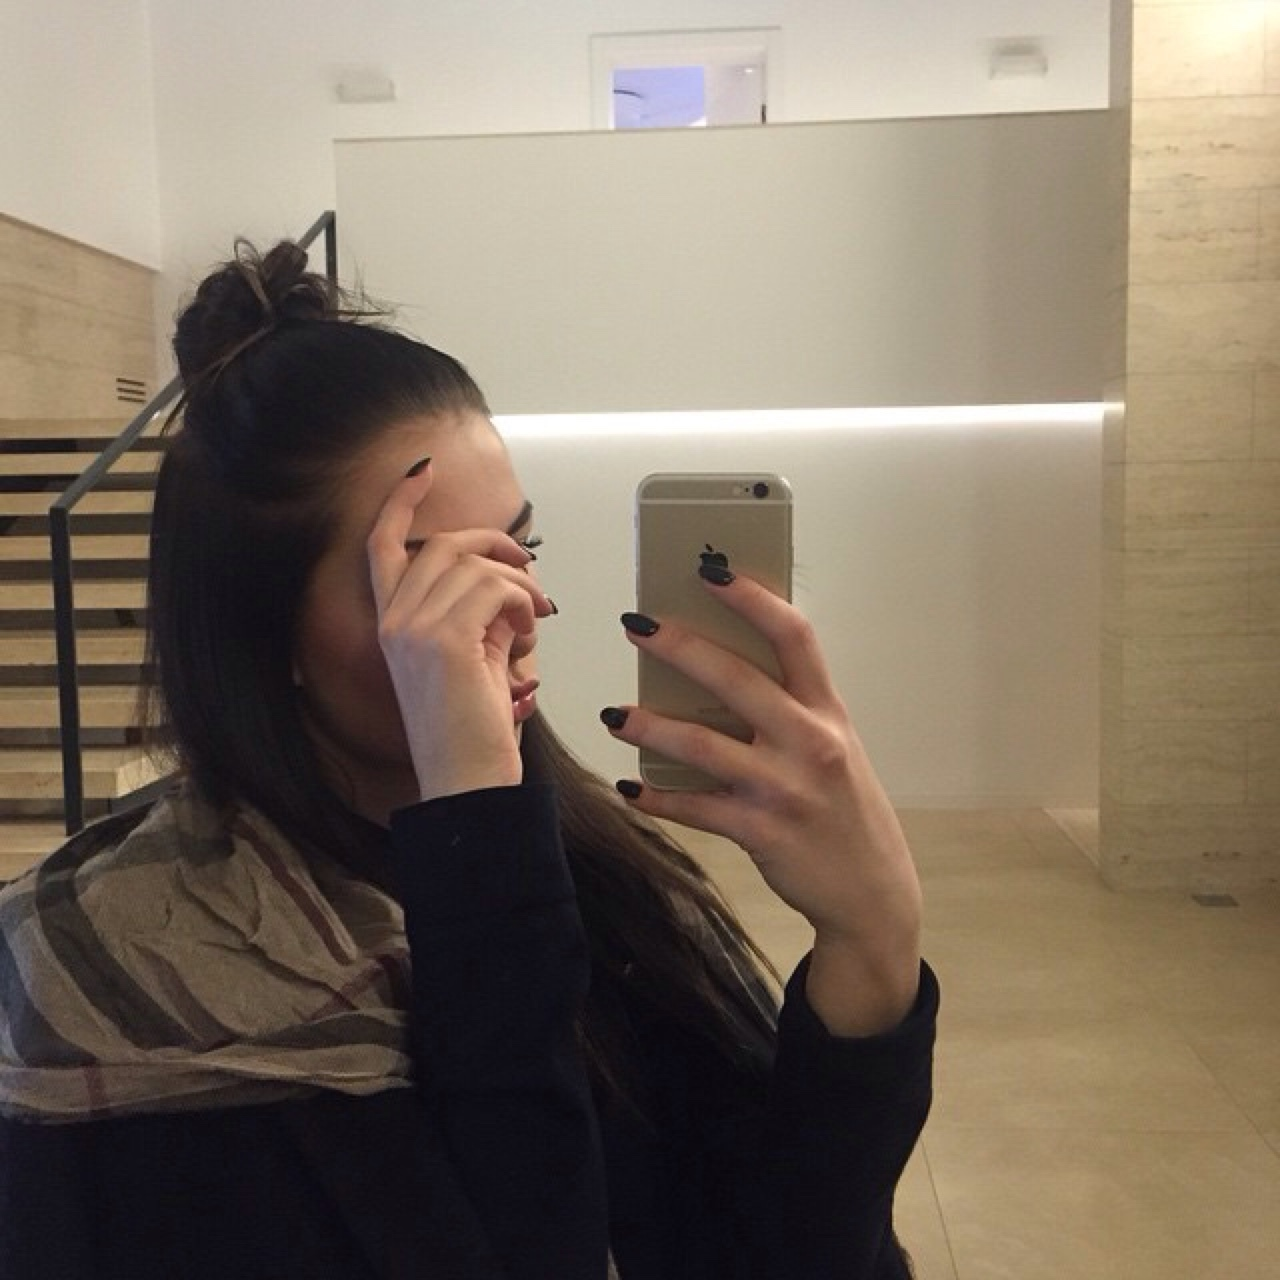 402 Images About Mirror Selfie On We Heart It See More About Girl Iphone And Style If it's a photo of a legal female taking a selfie. 402 images about mirror selfie on we